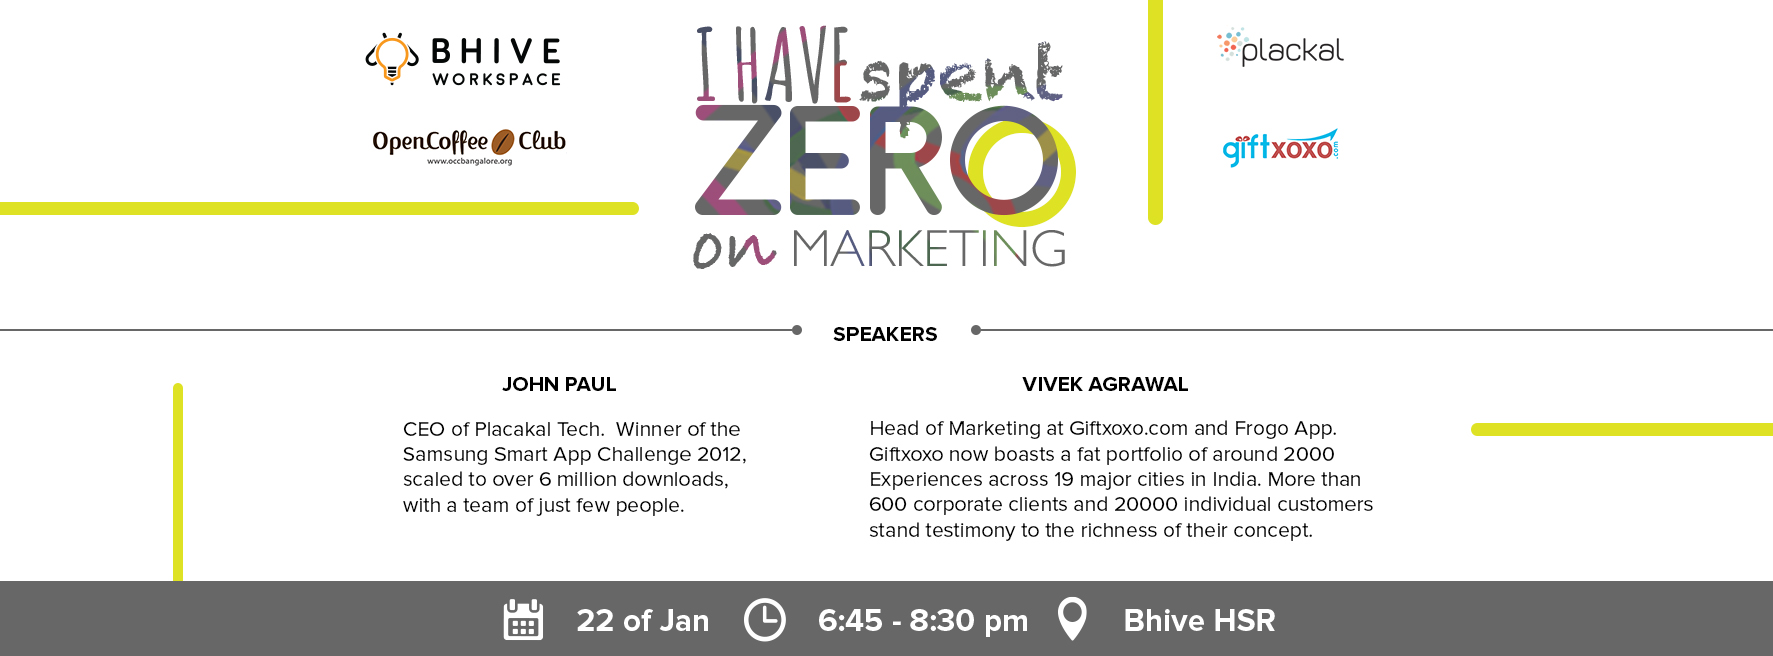 Book Online Tickets for Experience talk I have spent zero on Mar, Bengaluru. The first OCC Bangalore - BHIVE Meet of 2016. 